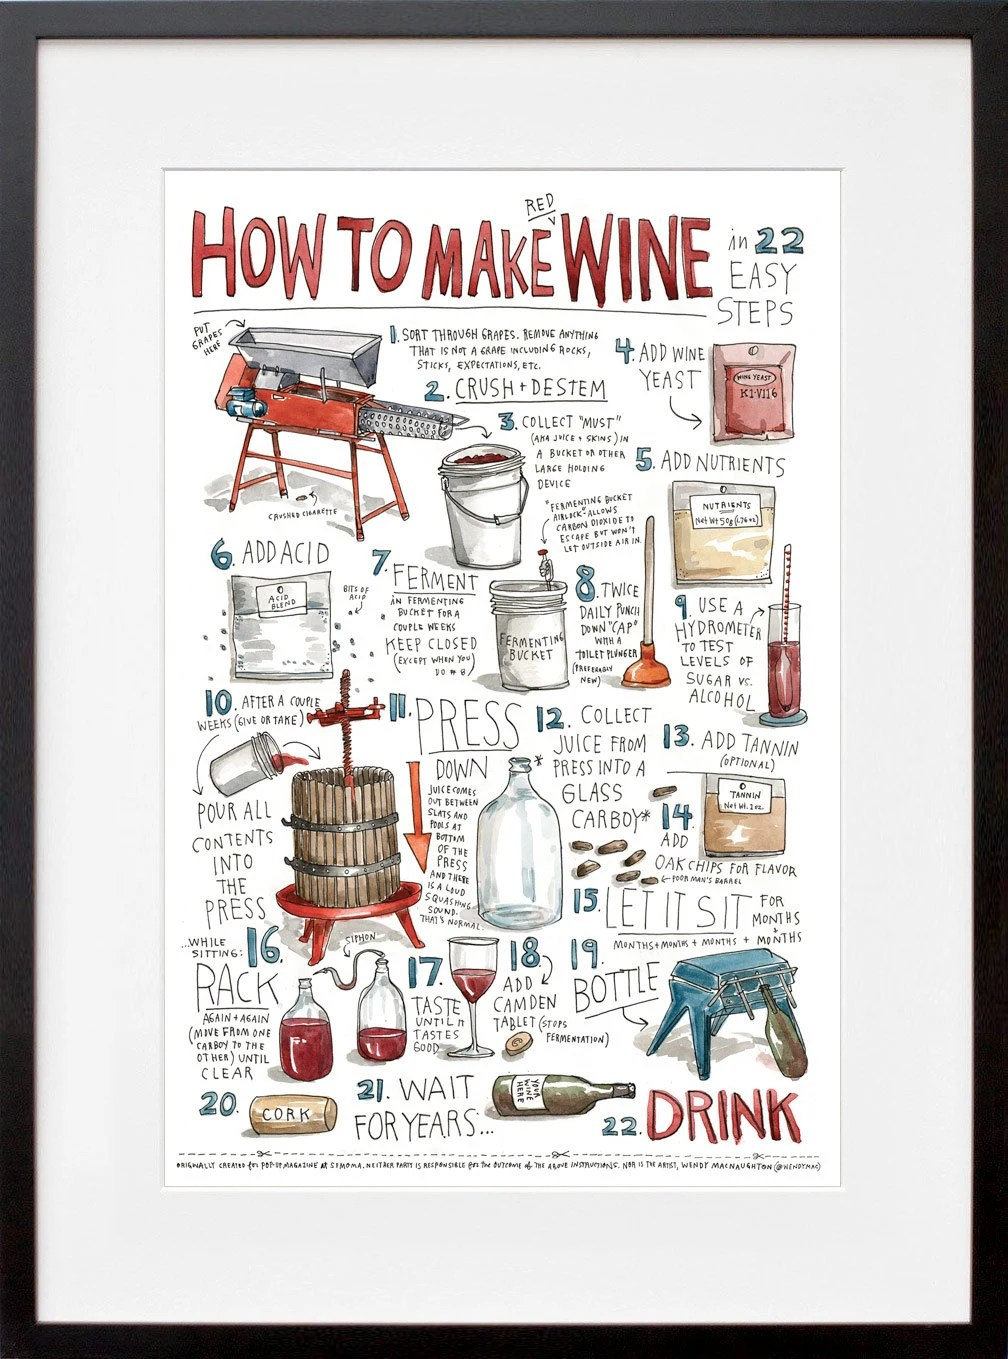 How to Make Wine - office newsletter